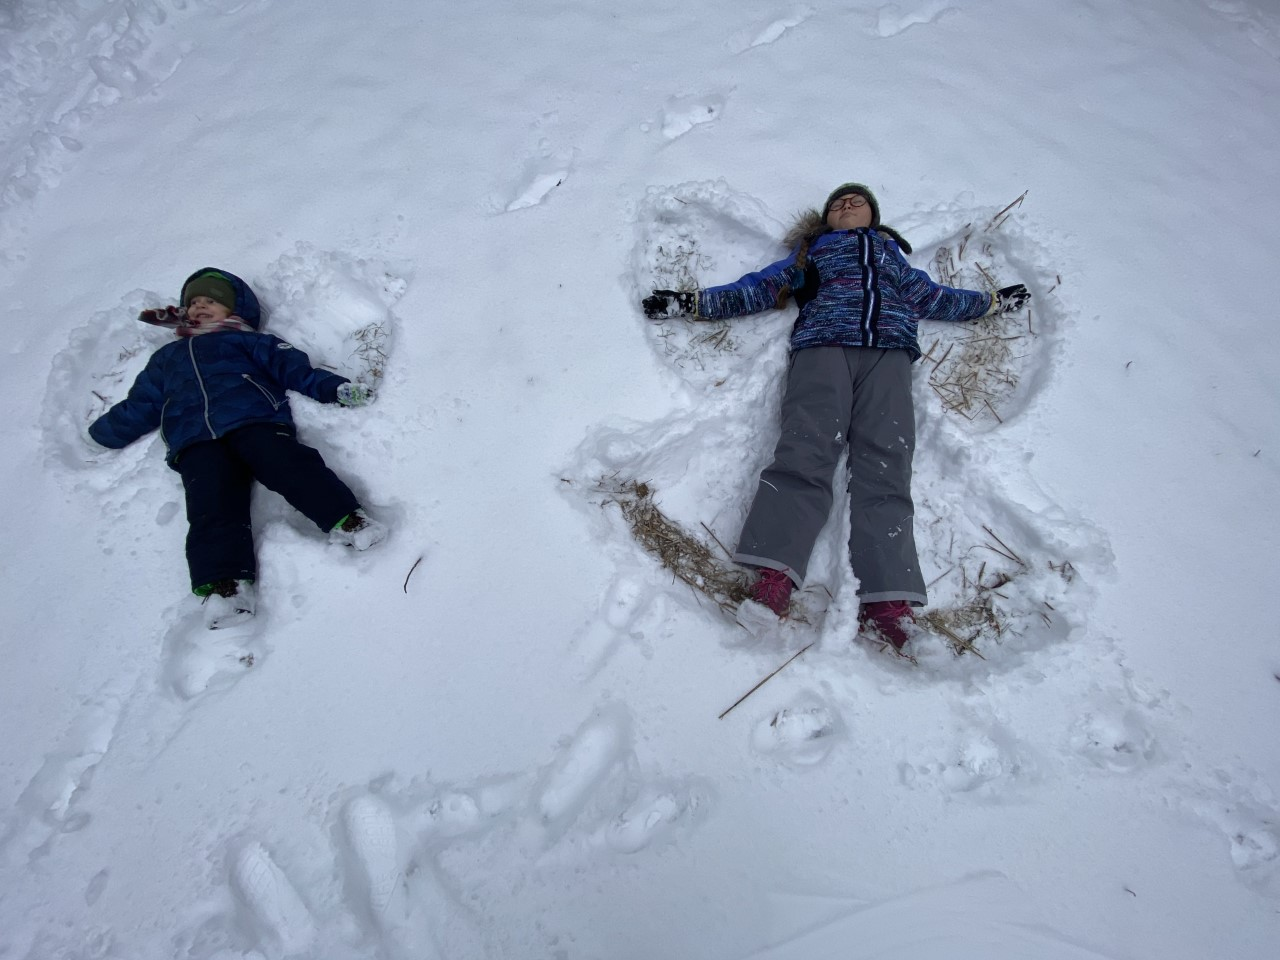 two kids making a snow angel on the ground